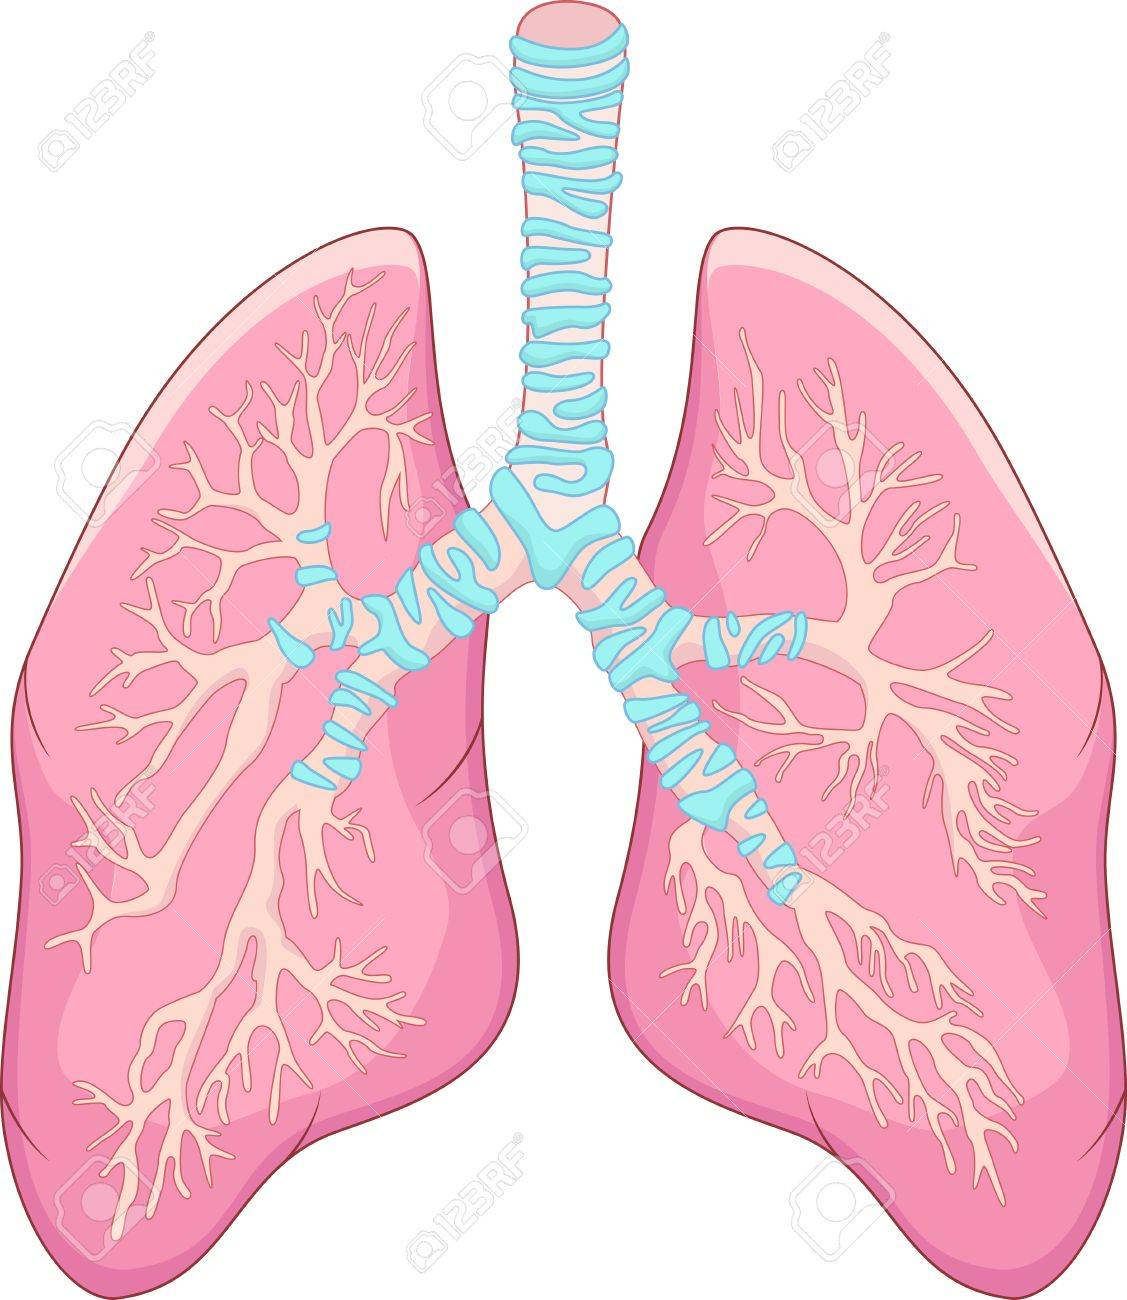 Human lung anatomy Stock Vector - 23075260